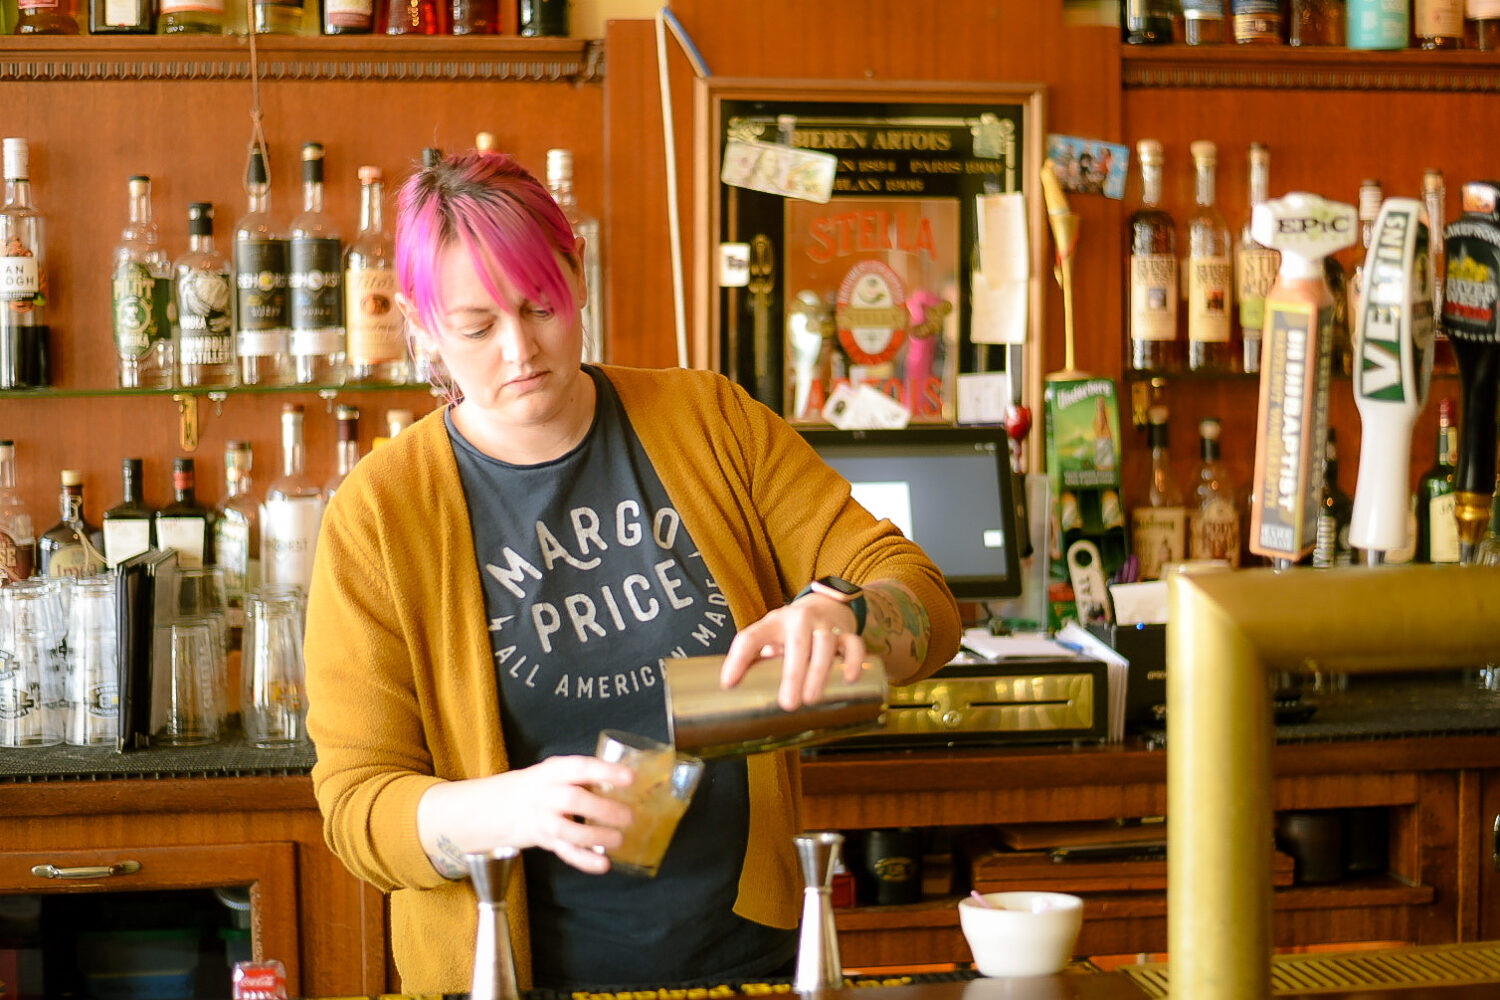 woman with pink hair behind a bar pouring a drink from a metal shaker into a tumbler glass